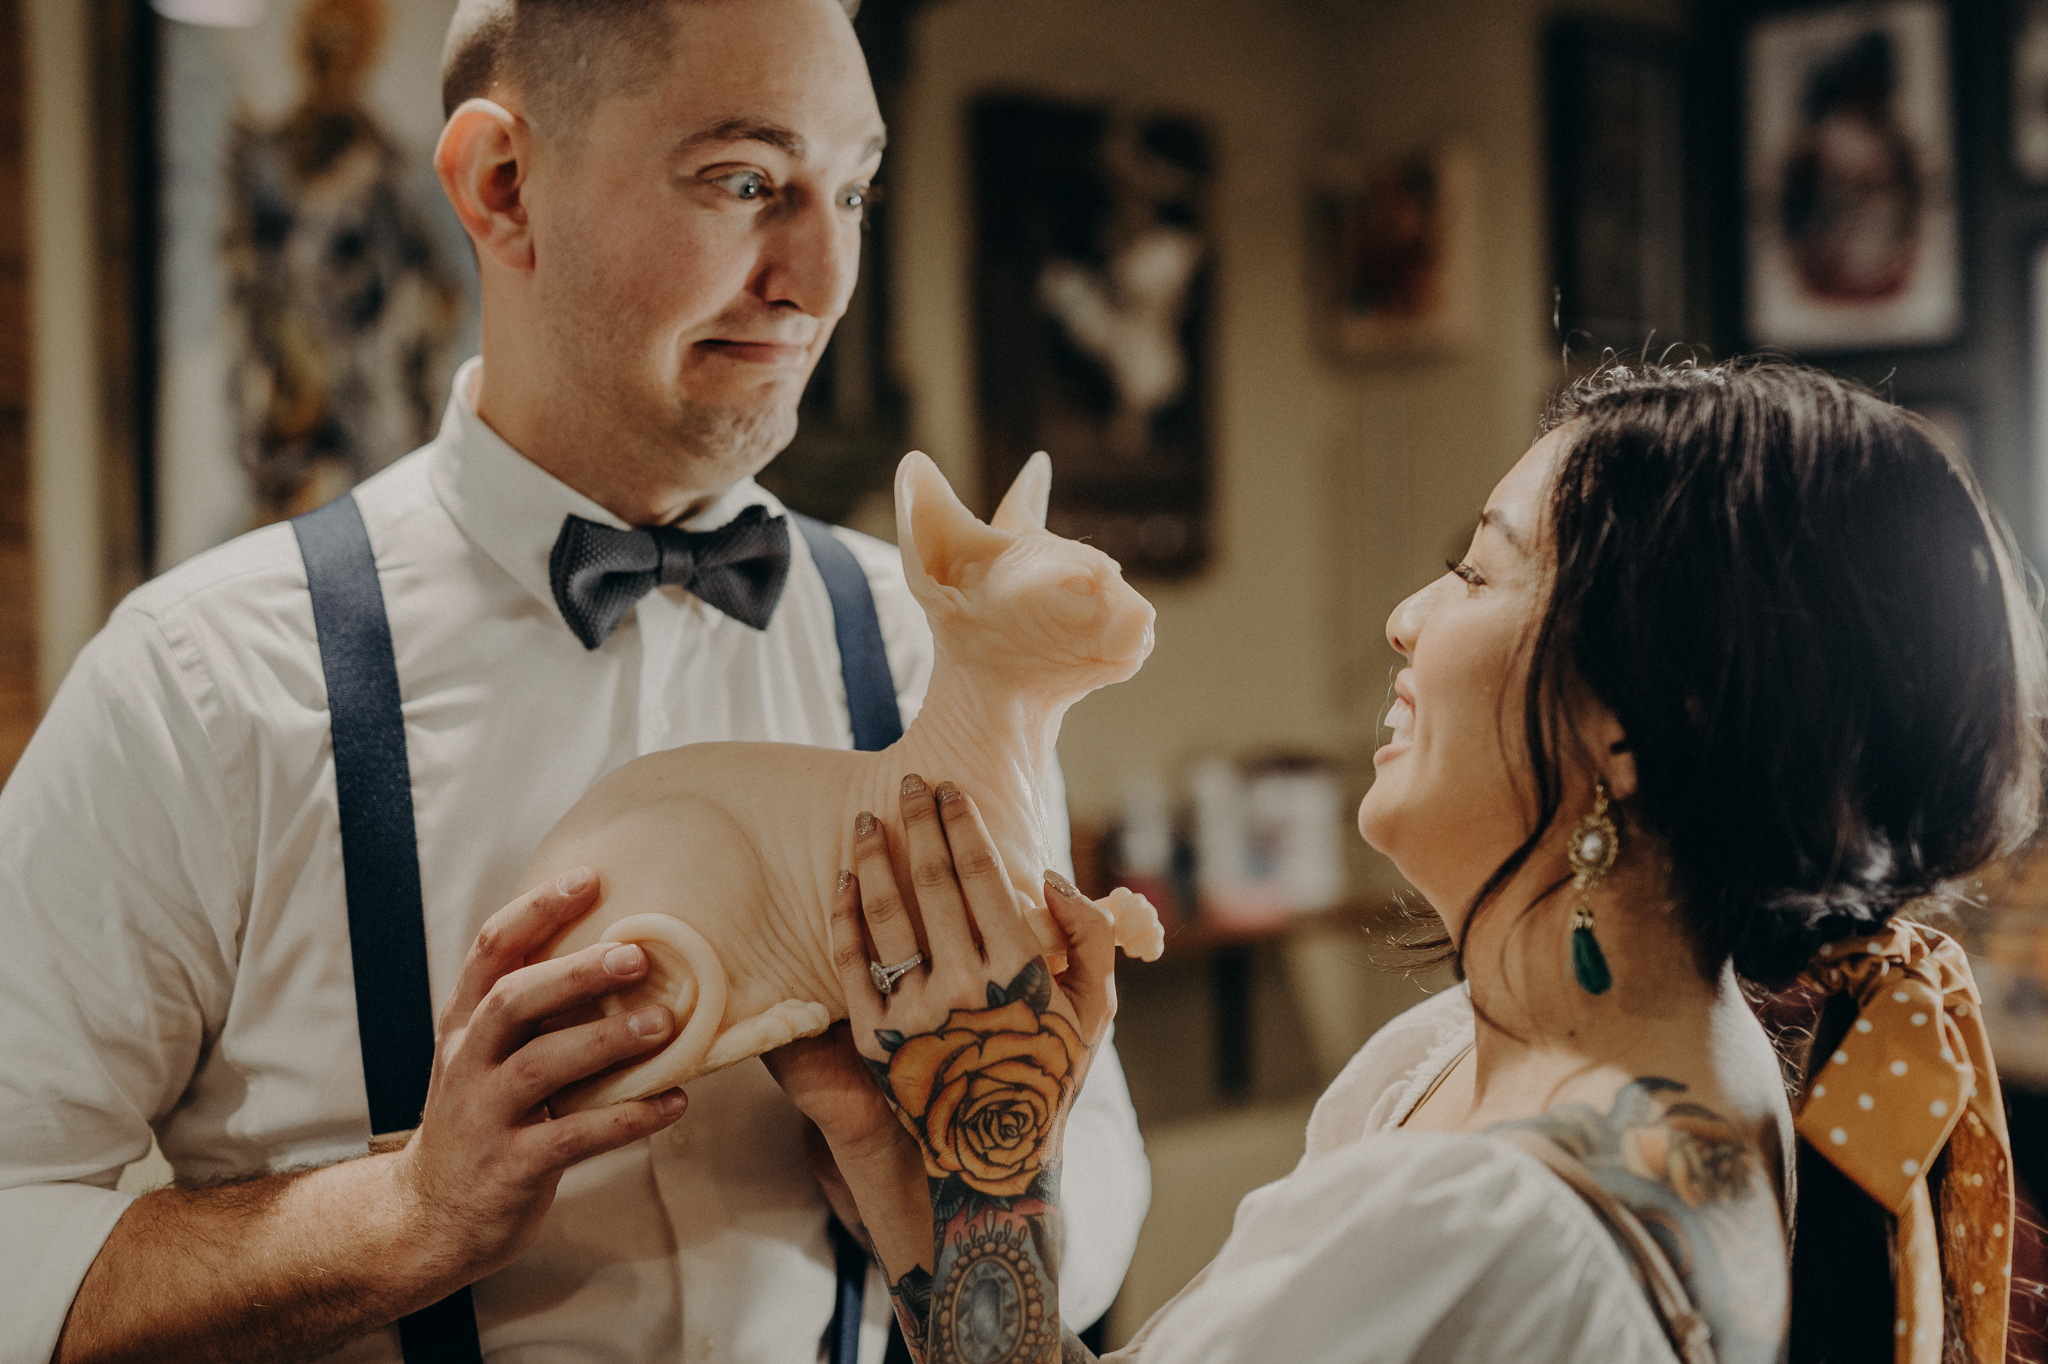 Wedding Photographer in LA - Los Angeles Wedding Photos - Tattoo Shop Engagement Session - IsaiahAndTaylor.com-005.jpg